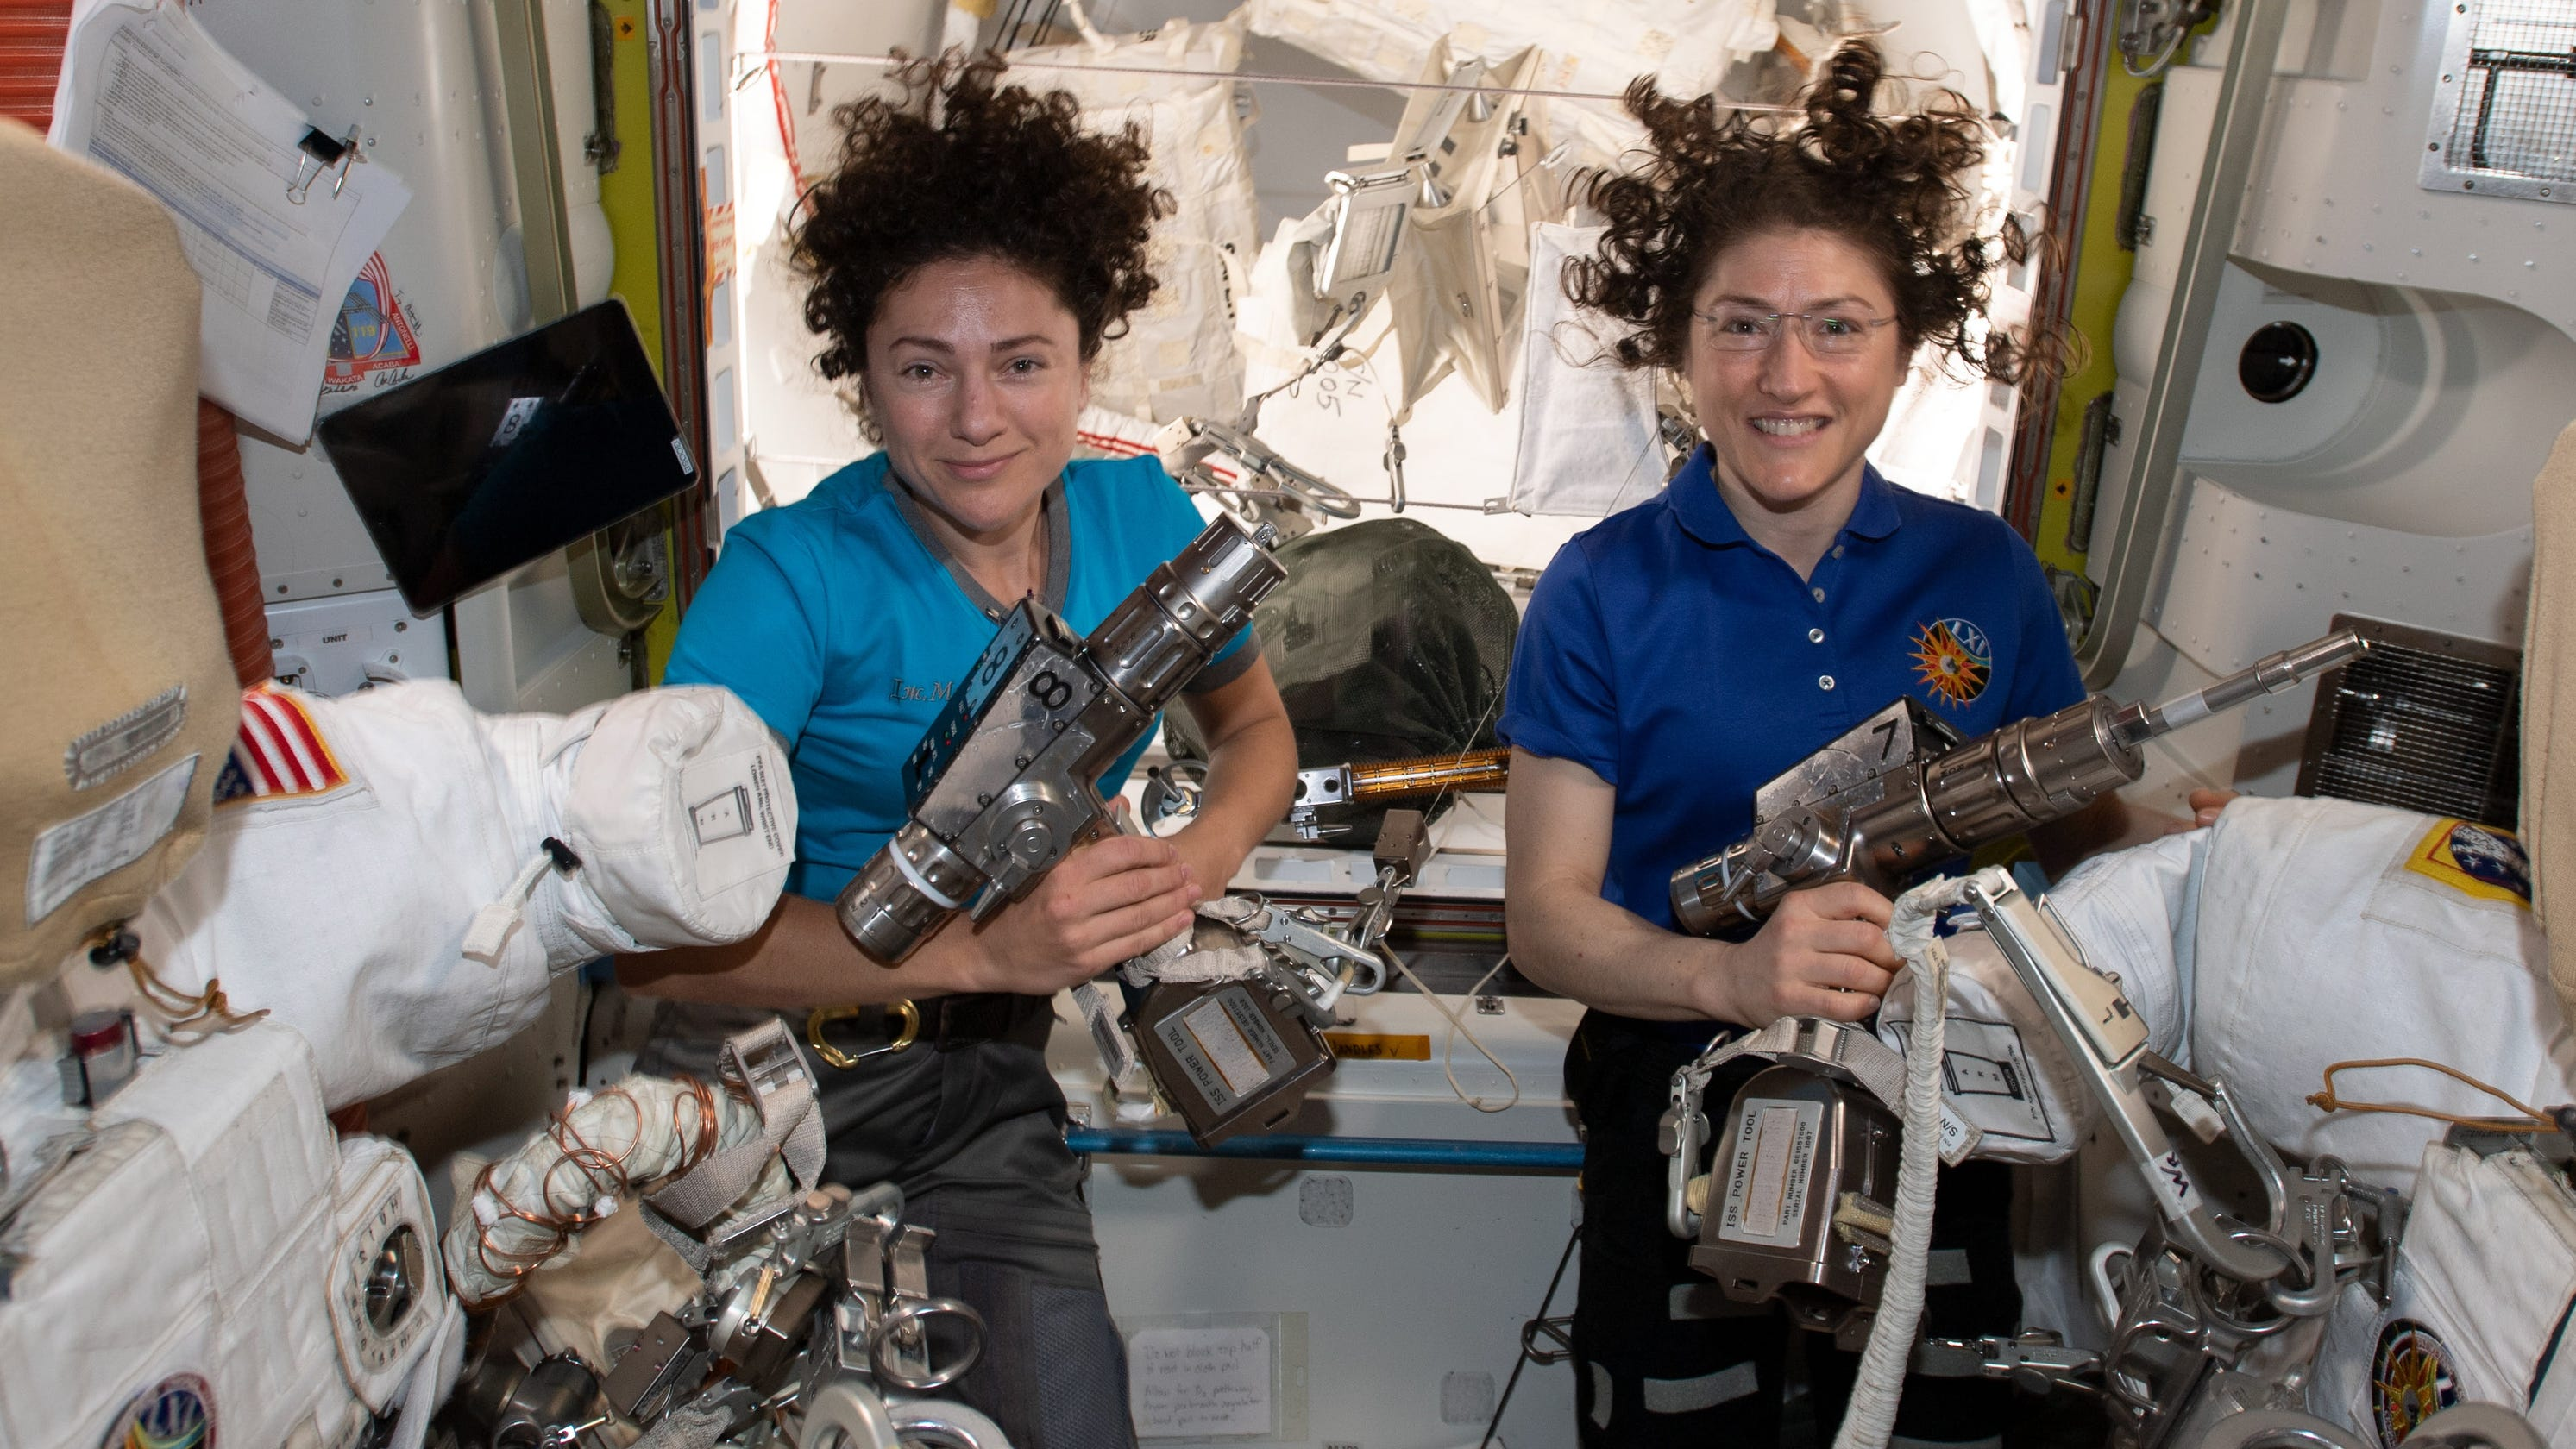 NASA astronauts embark on all-female spacewalk, Chicago teachers strike Day Two: 5 things you need to know Friday